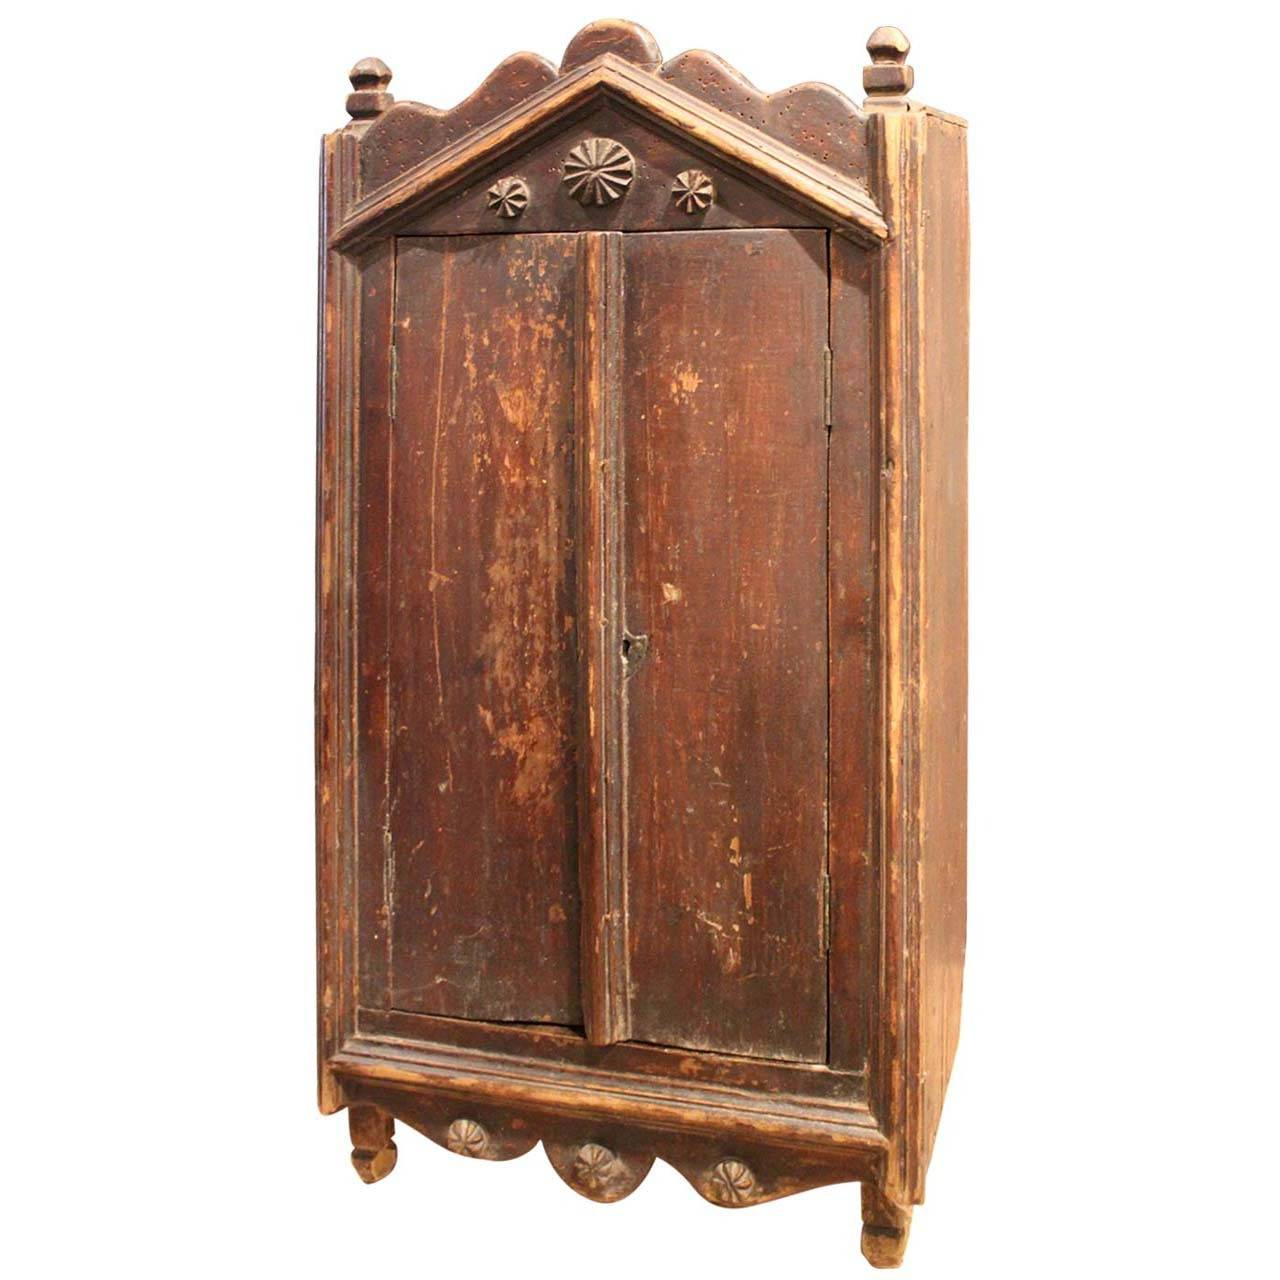 english tramp art armoire at 1stdibs. Black Bedroom Furniture Sets. Home Design Ideas